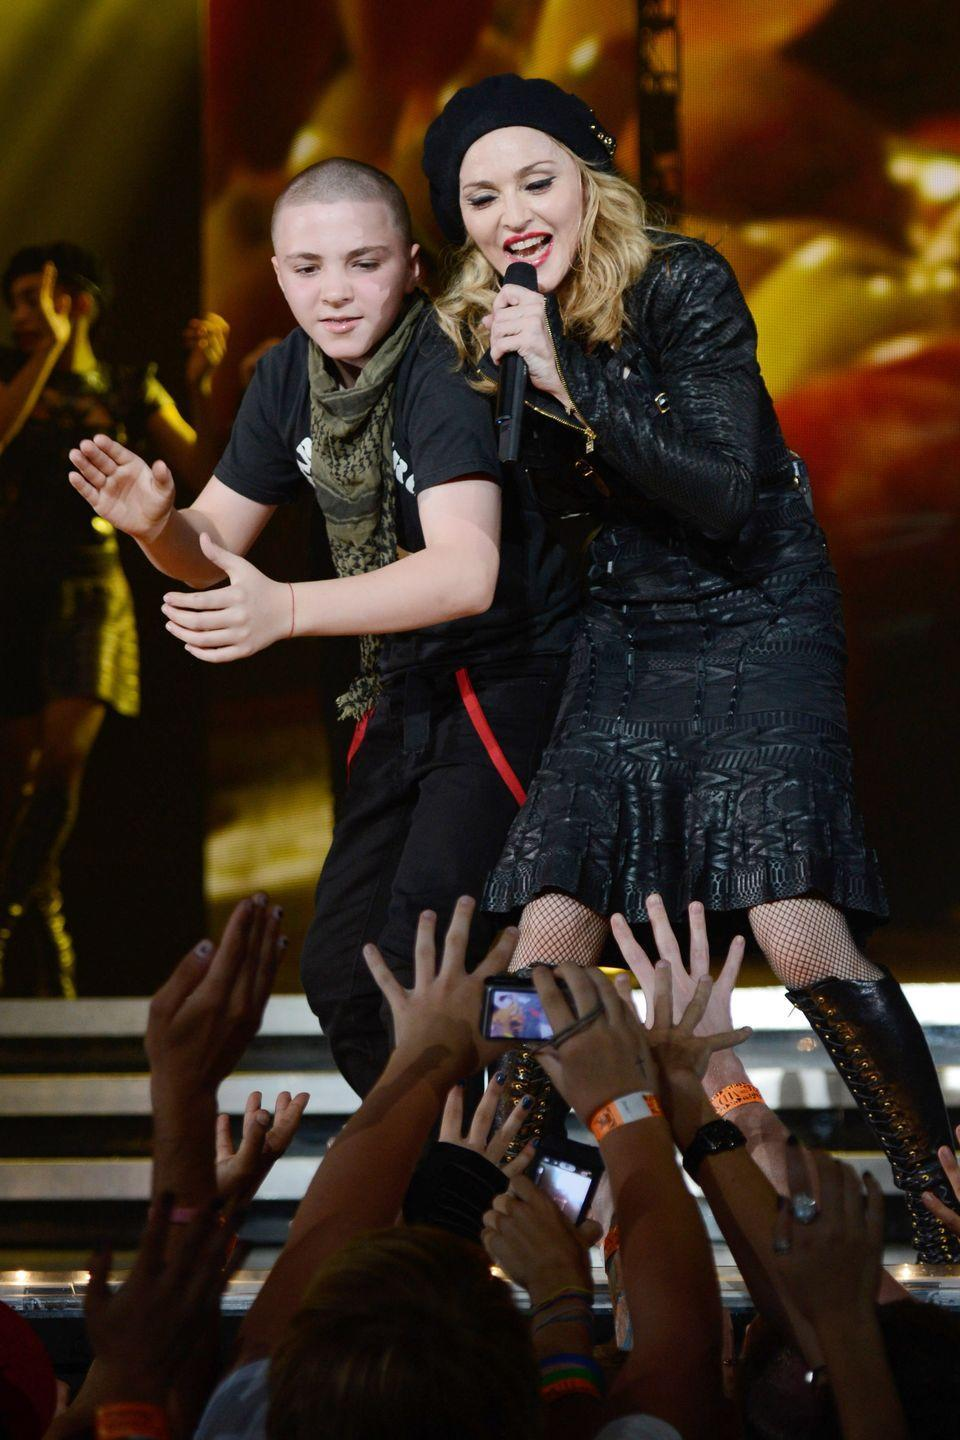 <p>Madonna had her second biological child, son Rocco, when she was 42 years old, after having given birth to her daughter Lourdes in her late 30s. Madonna has welcomed four adopted children into her family in addition to Lourdes and Rocco, bringing her to a total of six kids. </p>